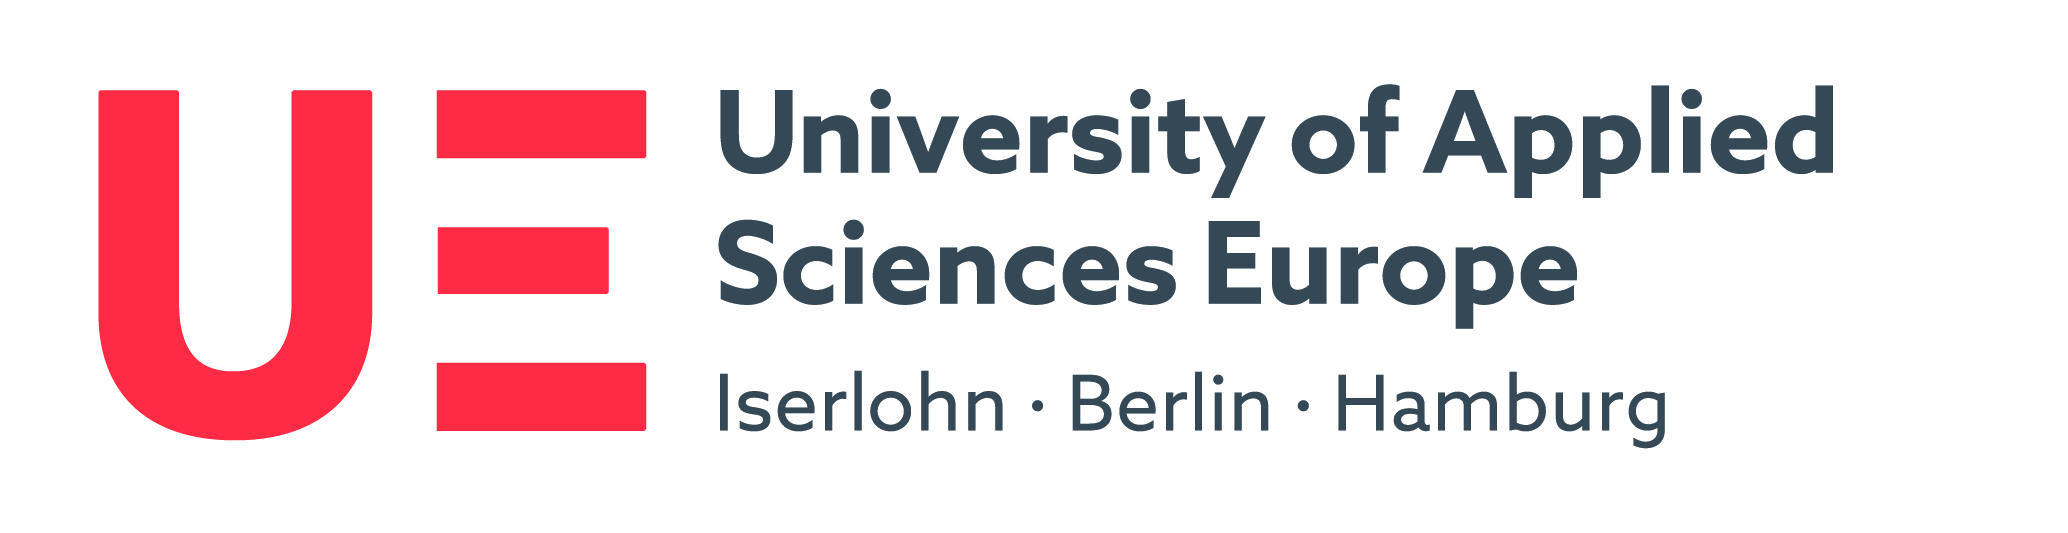 University of Applied Sciences Europe (UE) - BiTS und BTK